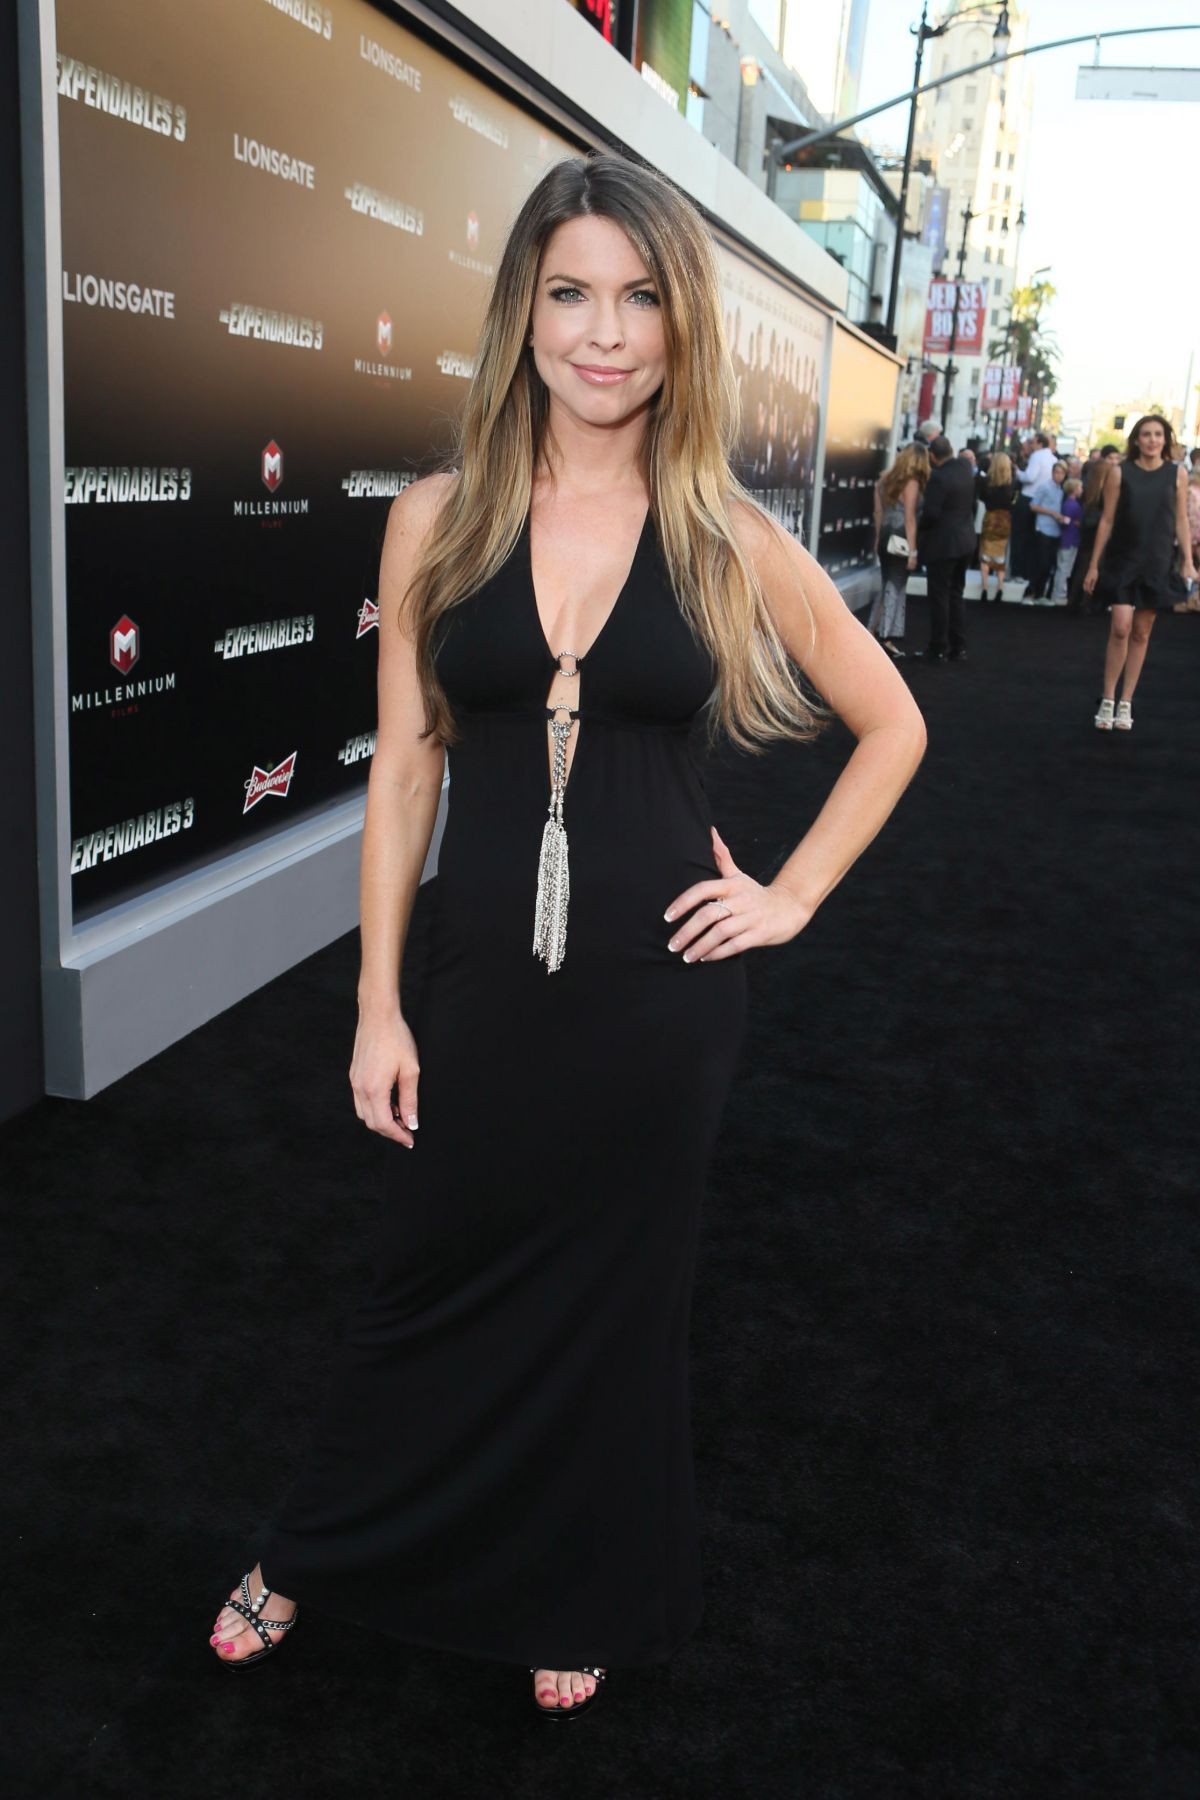 NICOLE ANDREWS at The Expendables 3 Priemere in Los Angeles